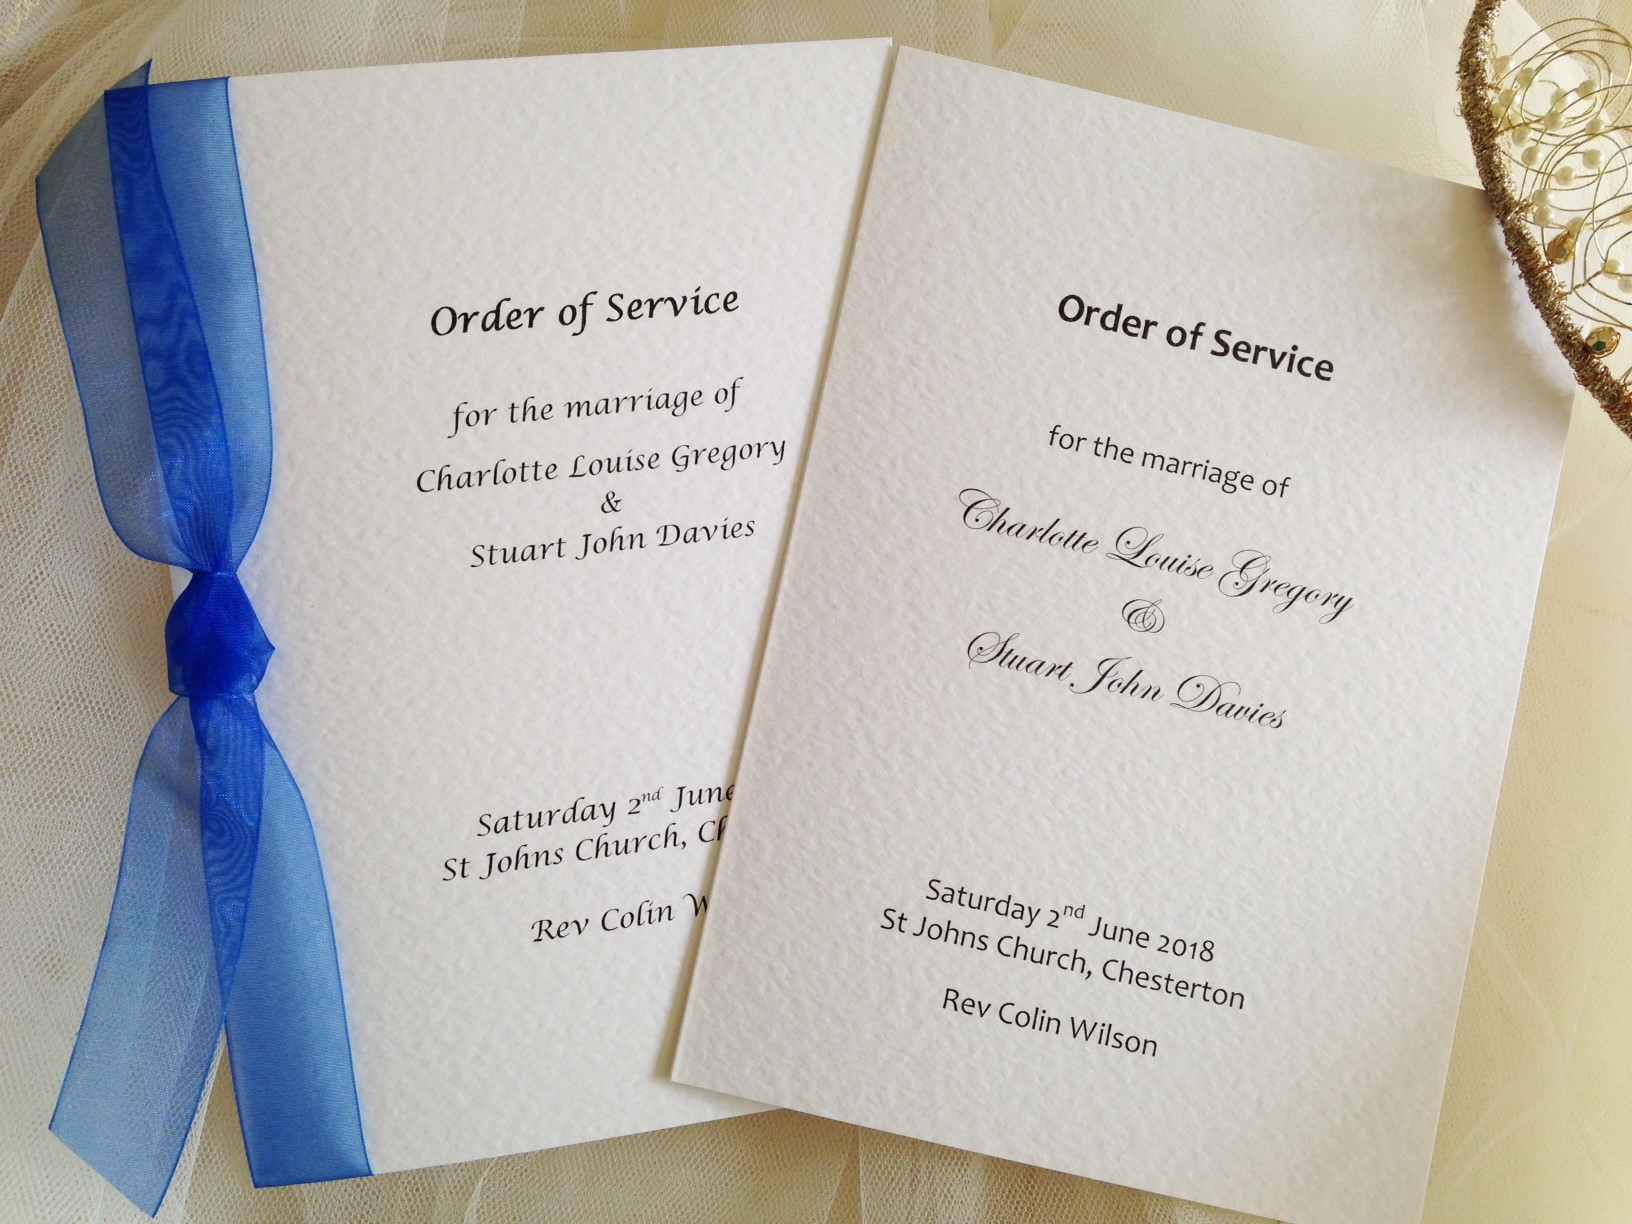 wedding ceremony order of service template free - order of service books for weddings wedding stationery